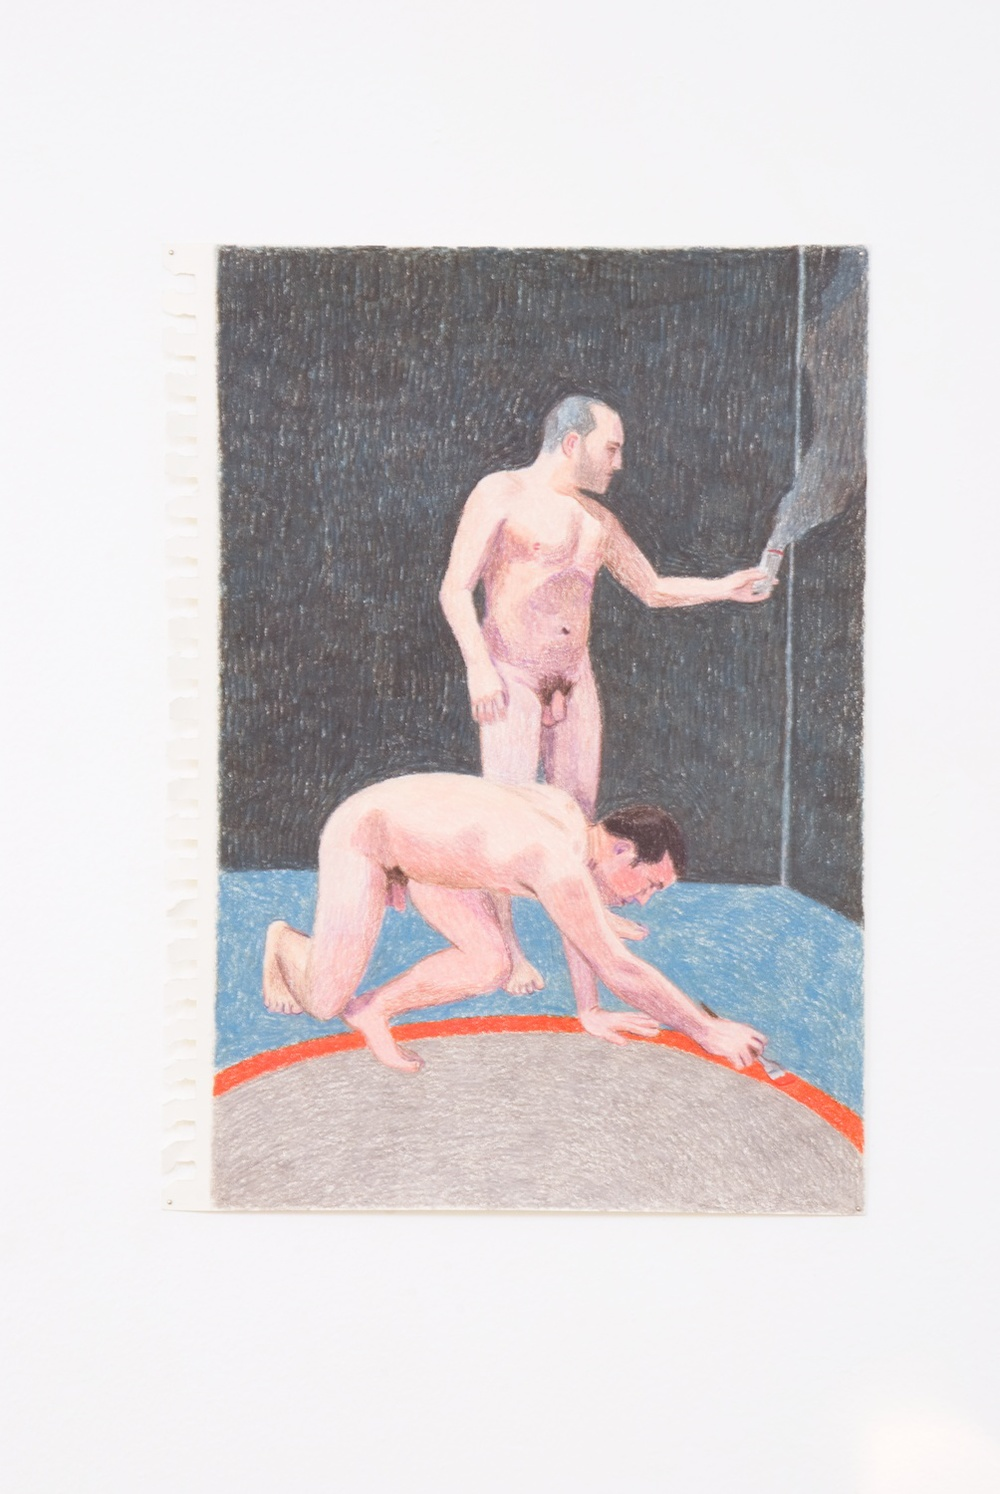 "Elijah Burgher Preparing a ritual space 2009 Colored pencil on paper 12"" x 8"" EB004"